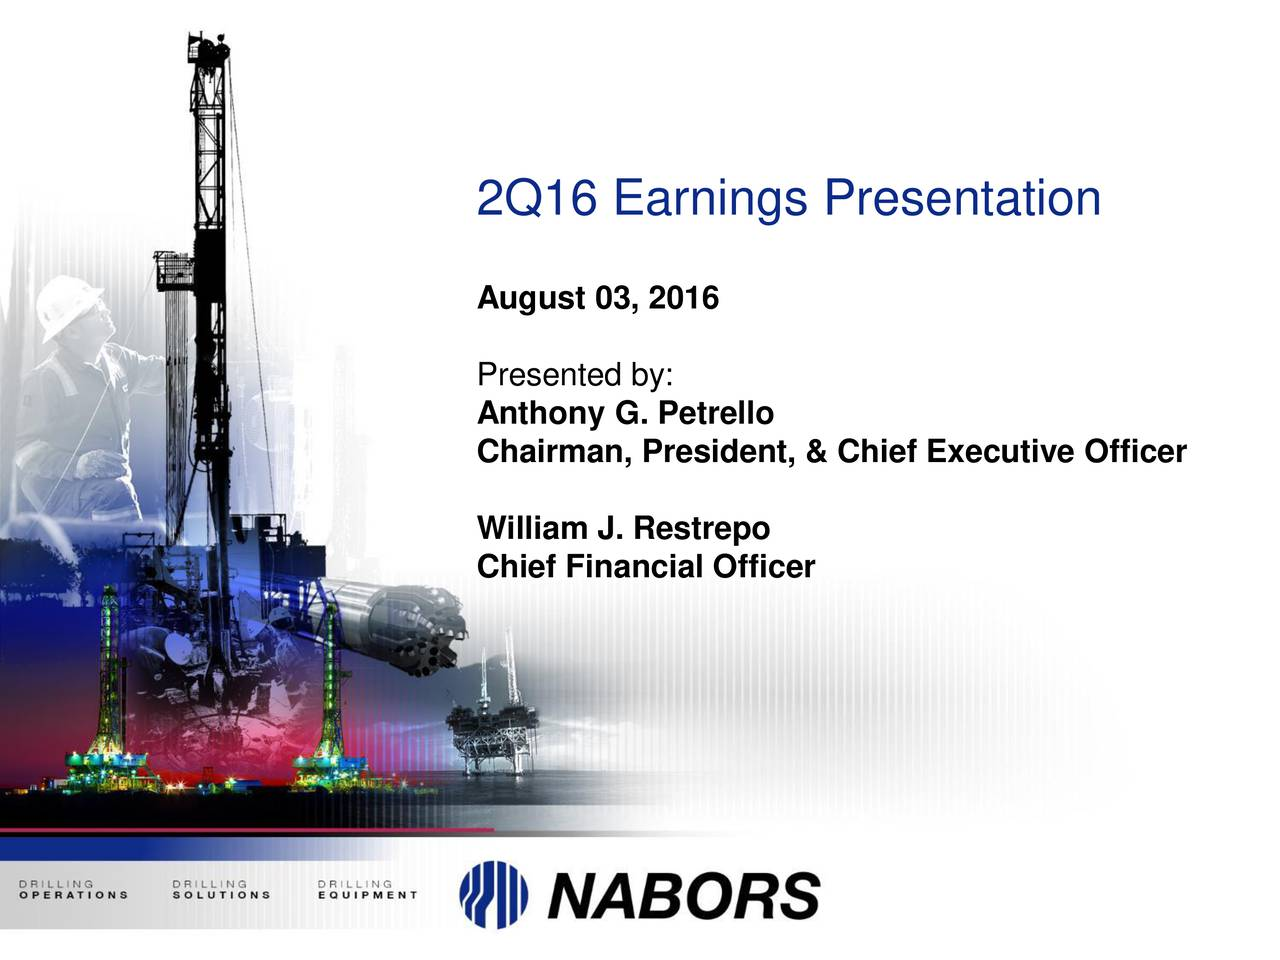 August 03, 2016 Presented by: Anthony G. Petrello Chairman, President, & Chief Executive Officer William J. Restrepo Chief Financial Officer